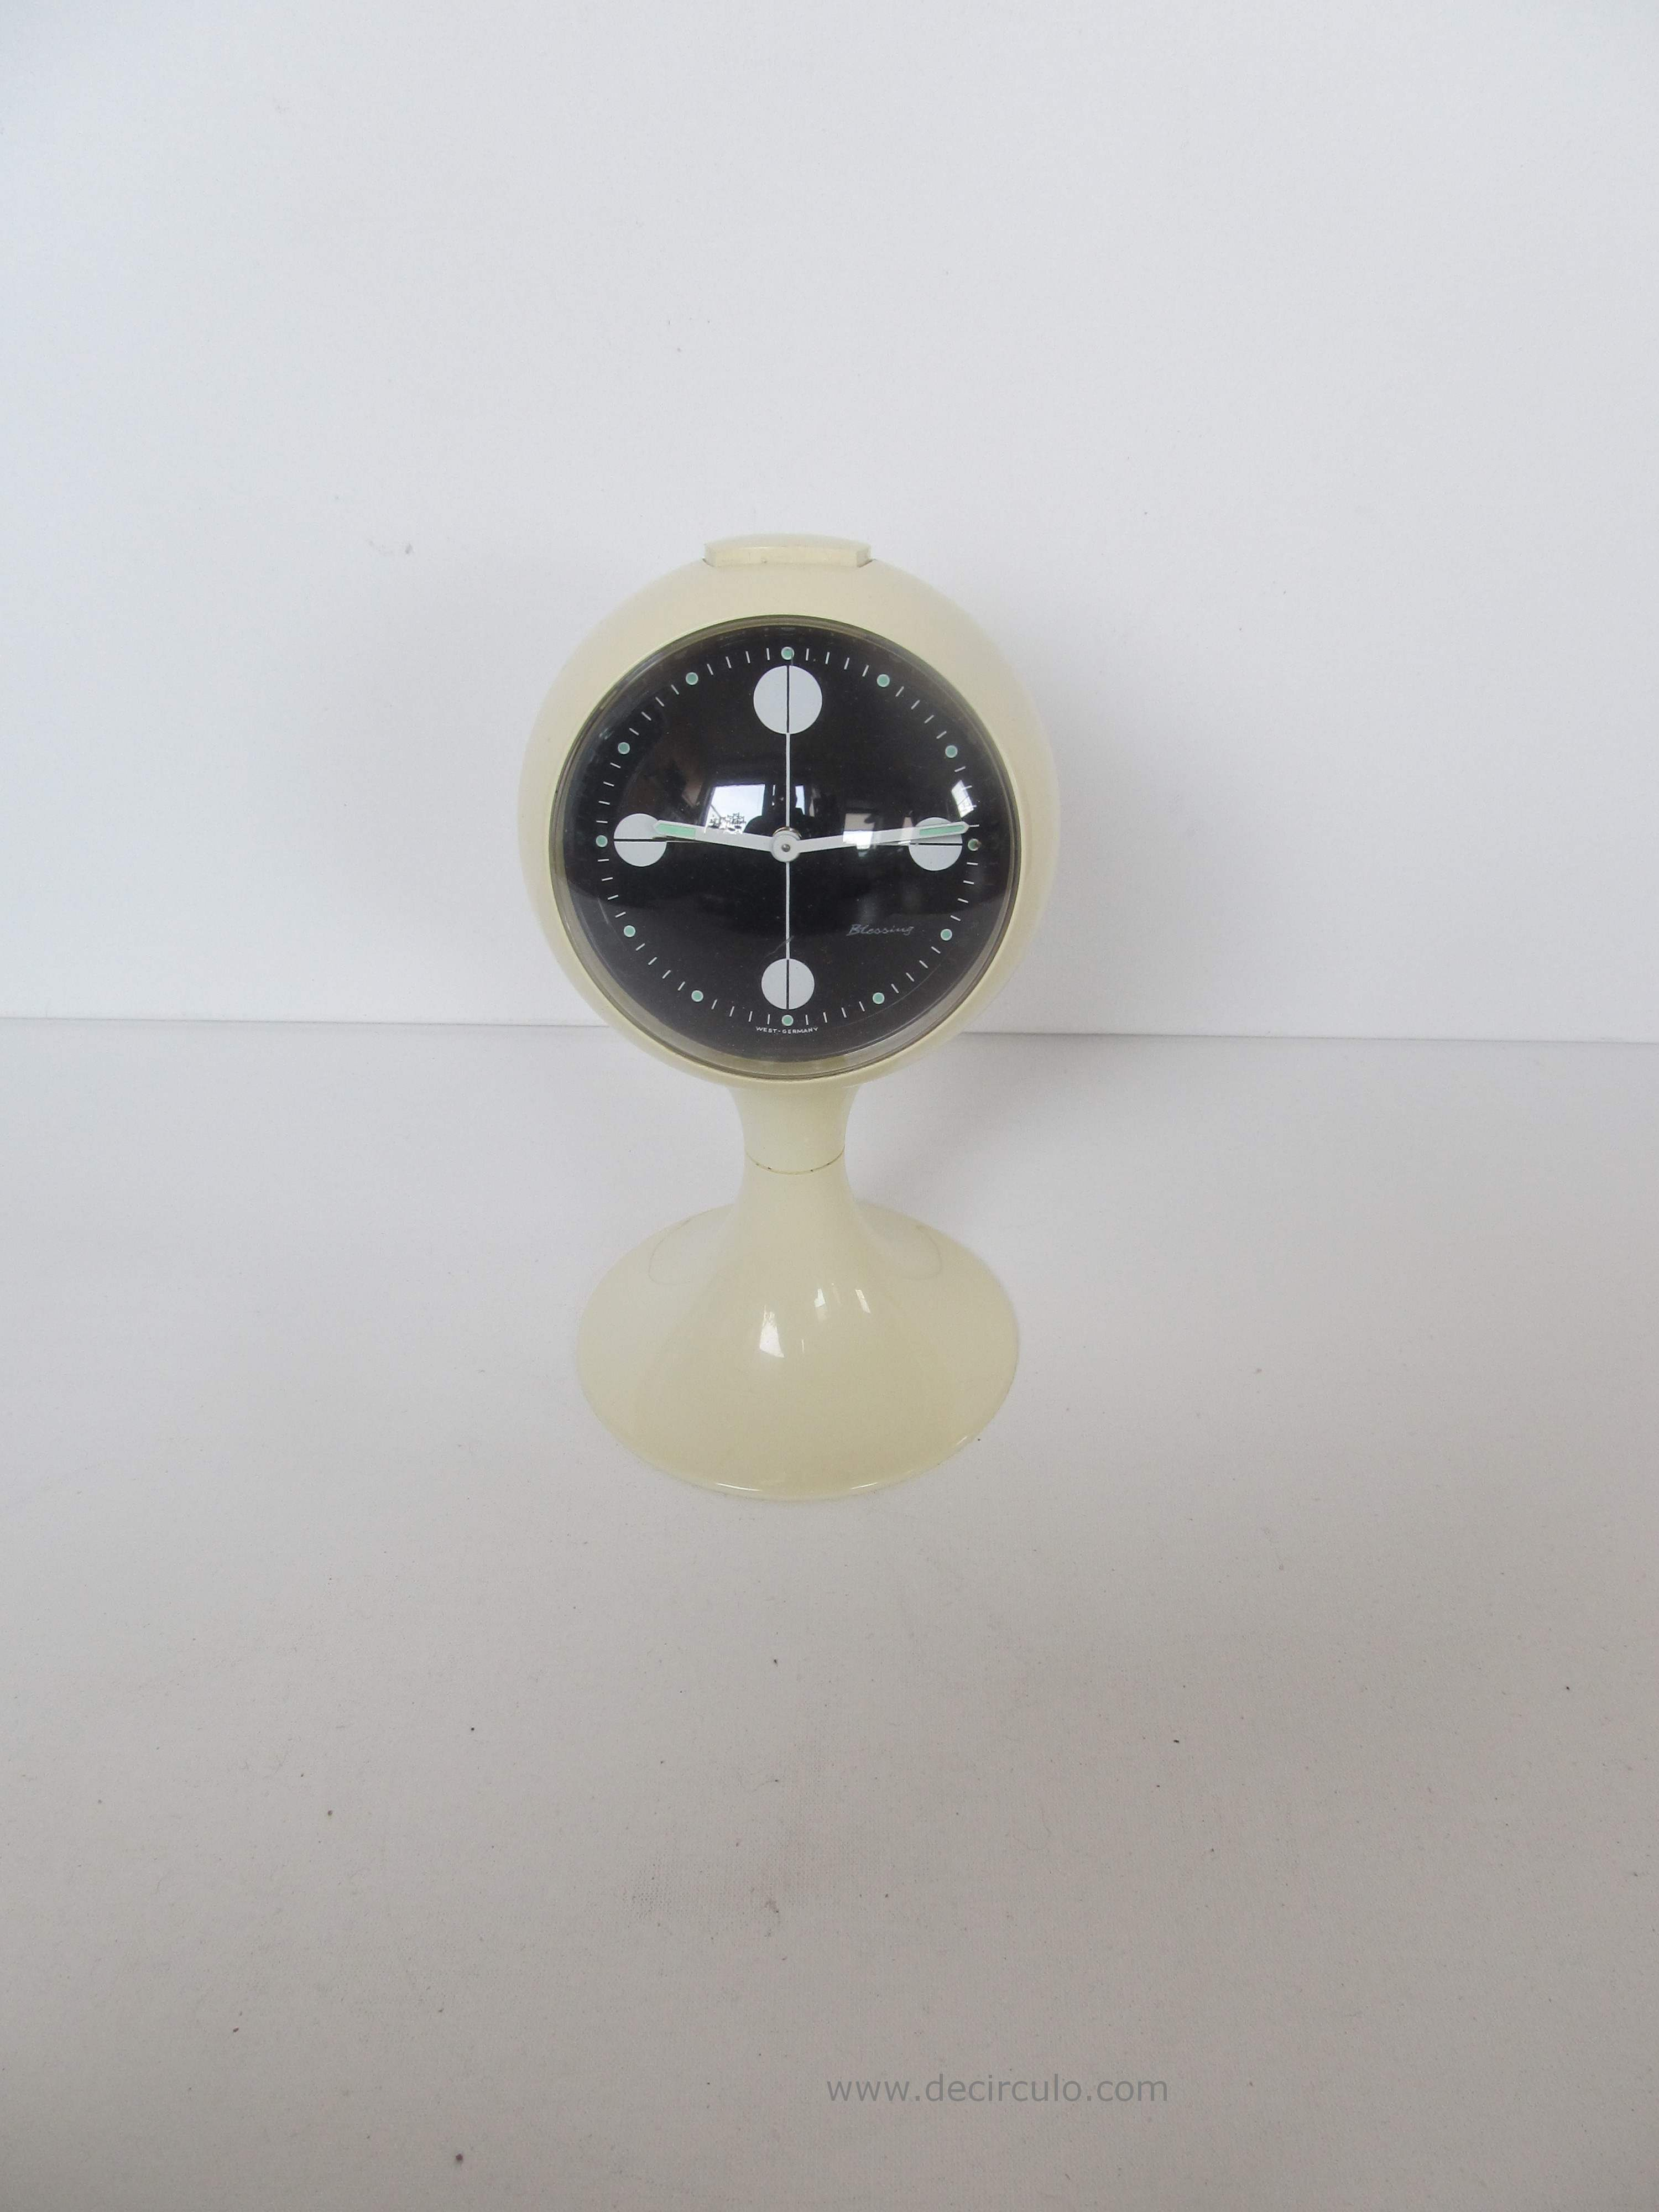 ABS Vintage Blessing Alarmclock